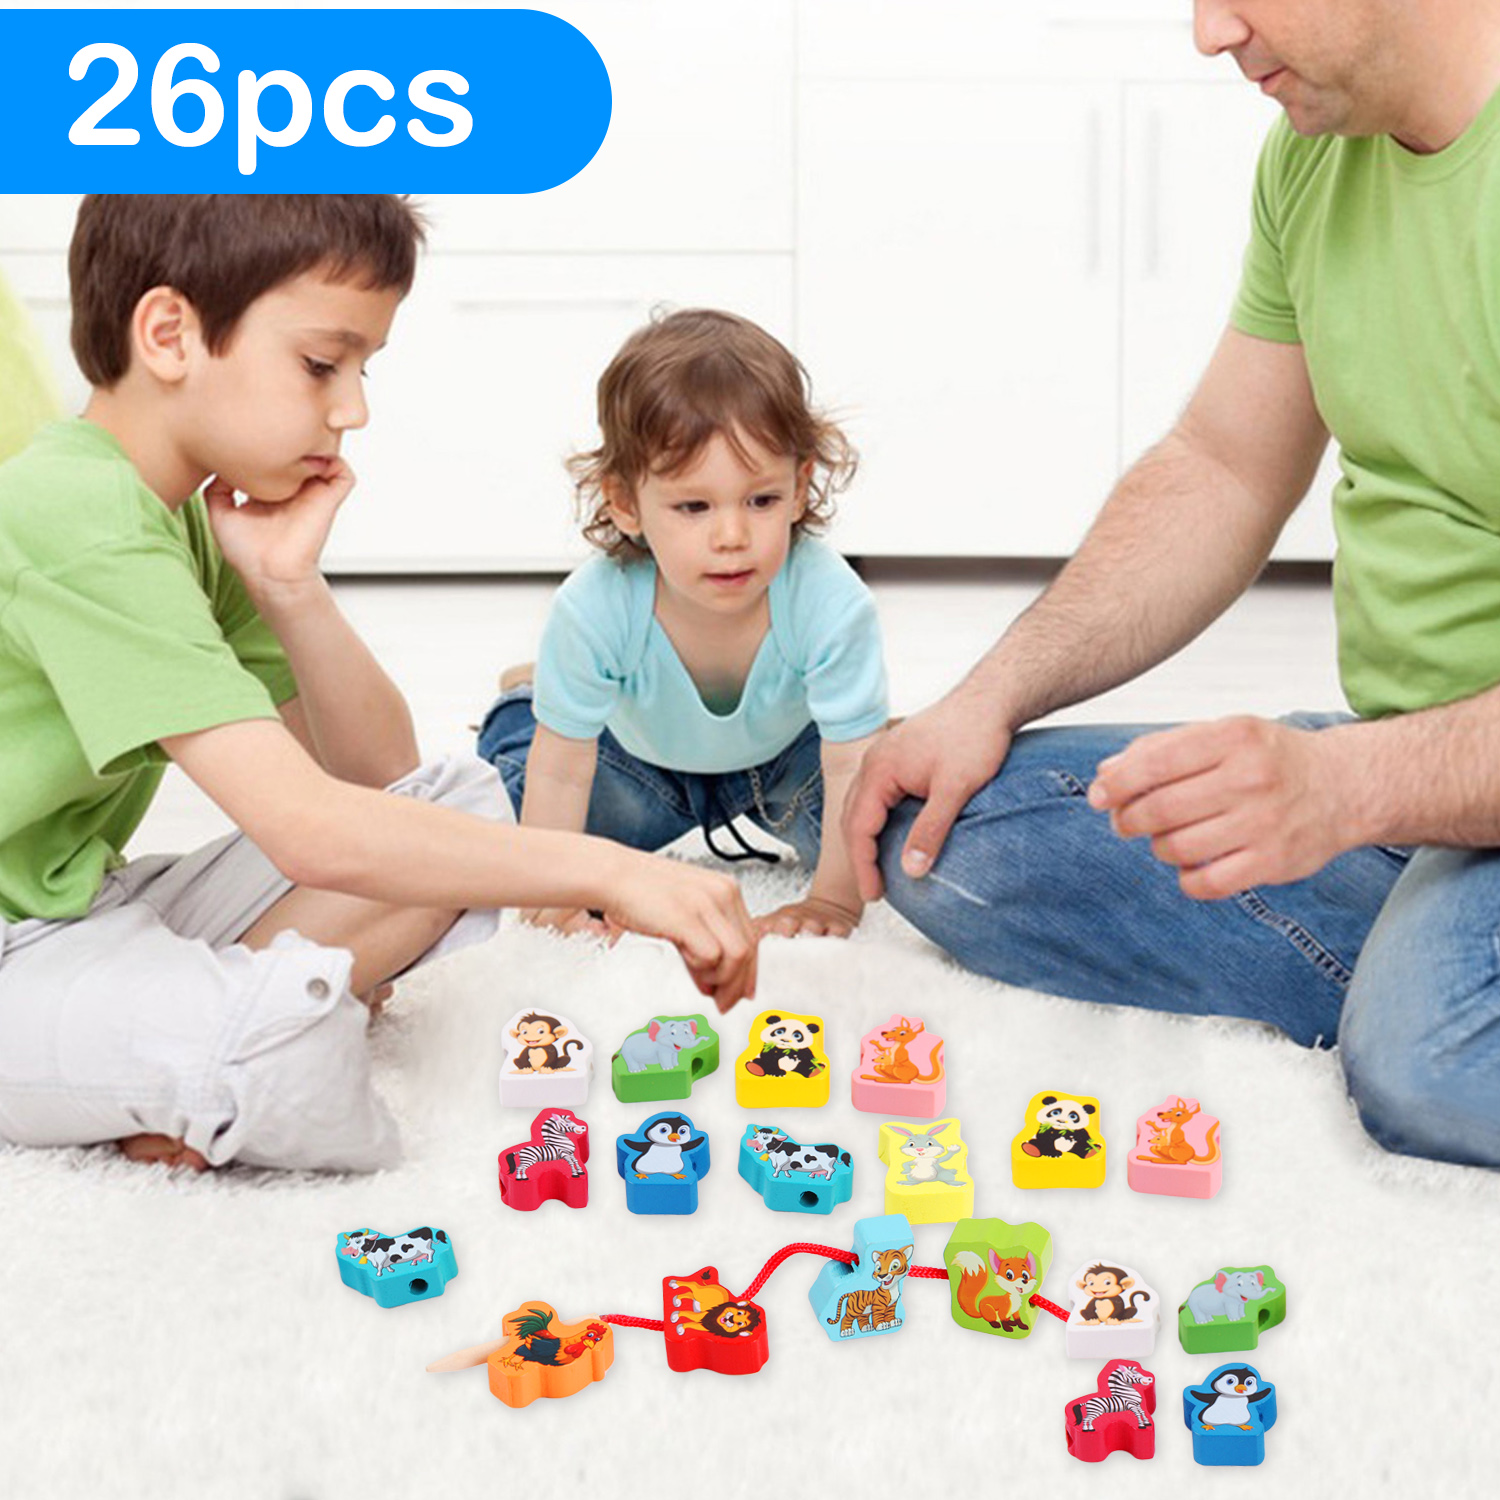 26pcs Lacing Beads Toys Funny Wooden Animal String Threading Beads Montessori Educational Toys For Toddlers Children Kids